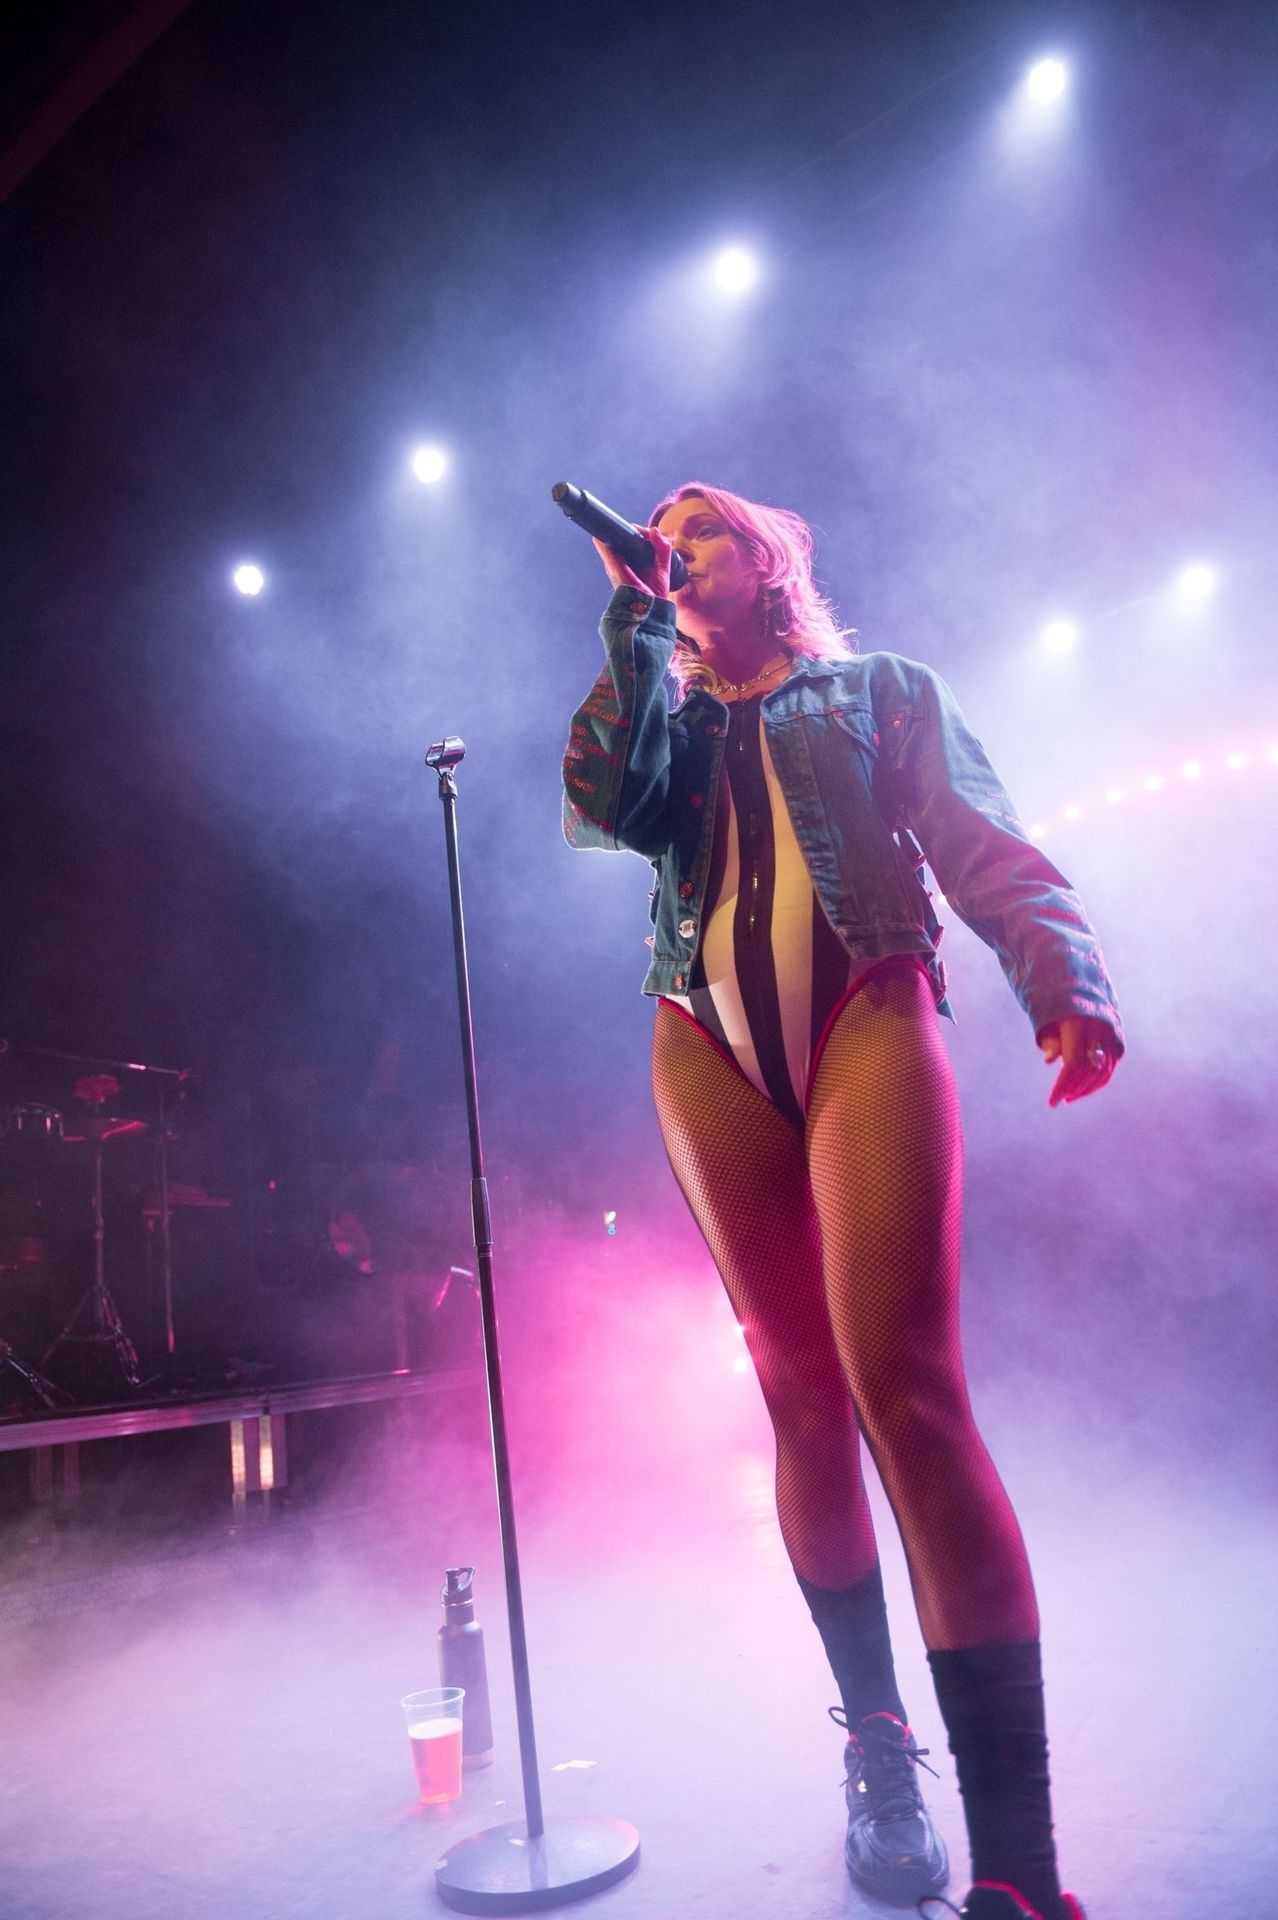 Tove Lo Is In Concert Performing Live At O2 Forum Kentish Town In London 0015